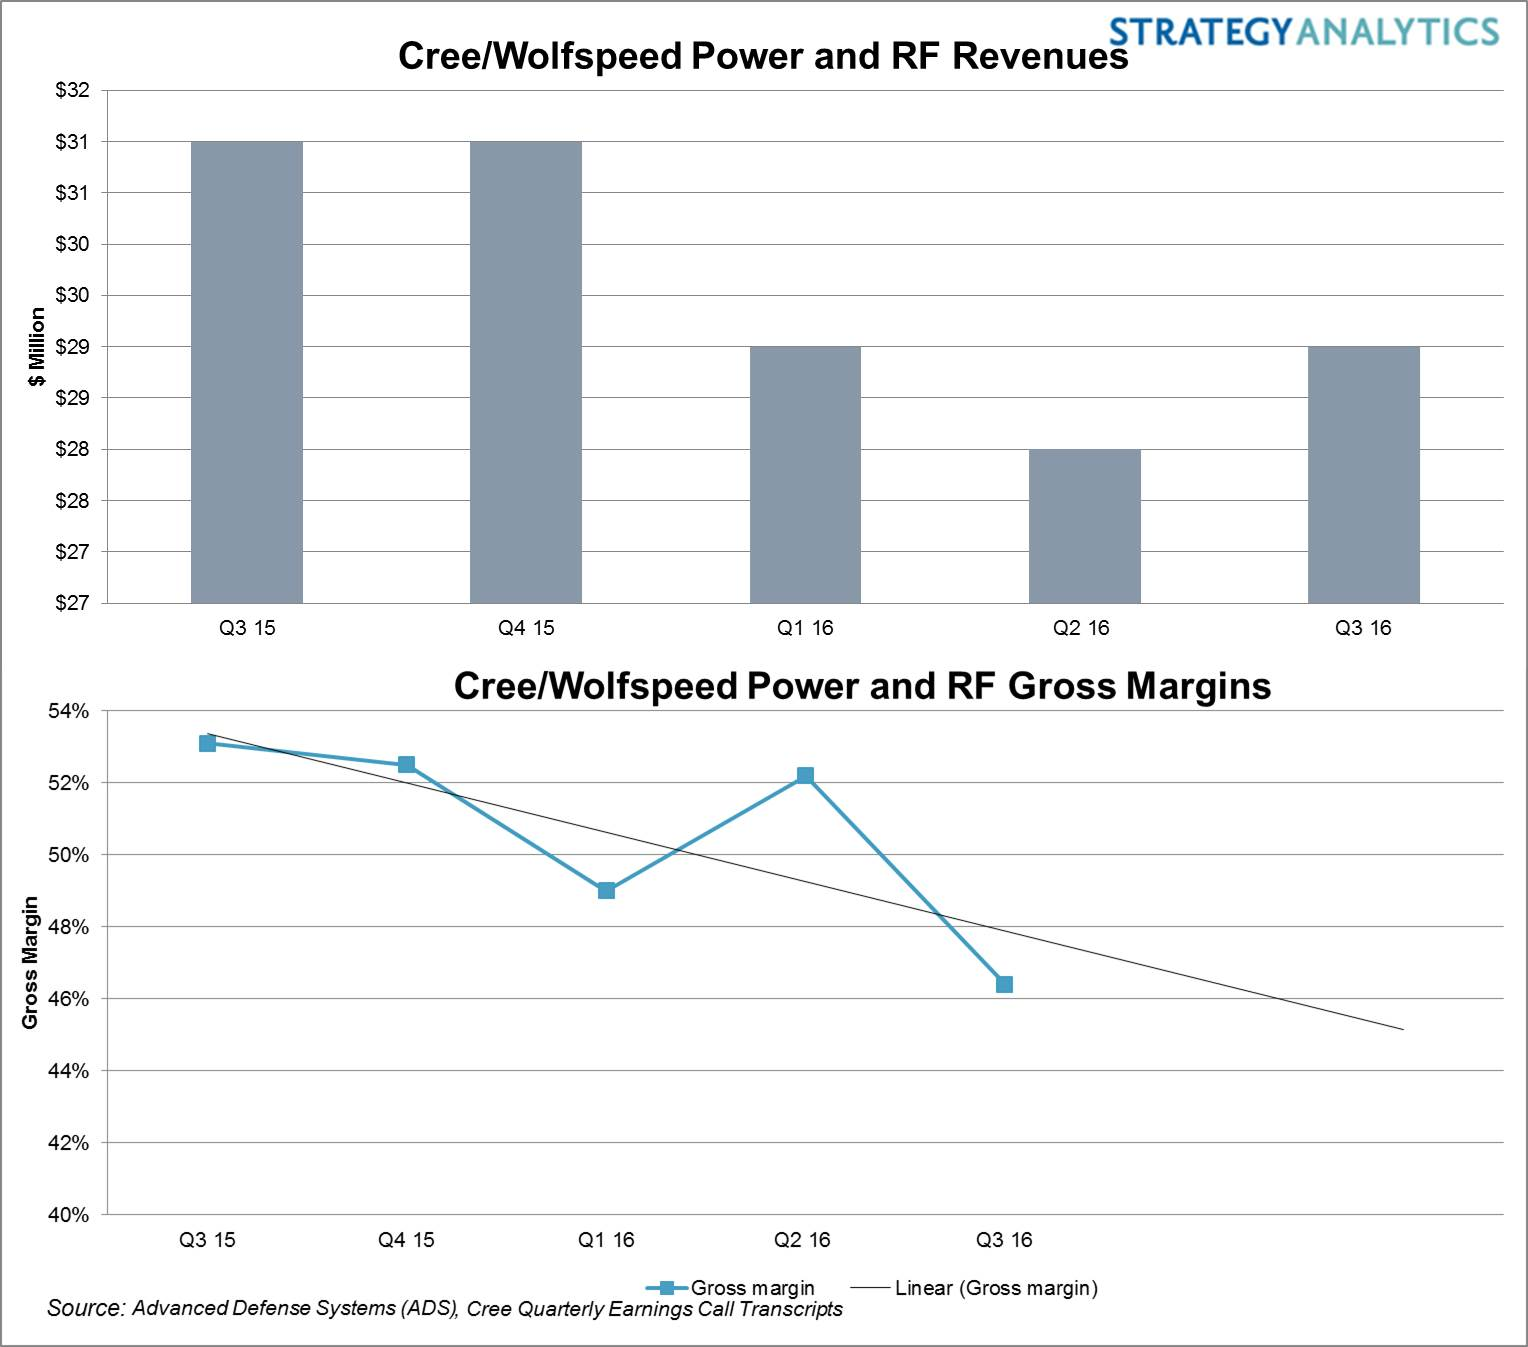 Cree/Wolfspeed Revenues-Gross Margin